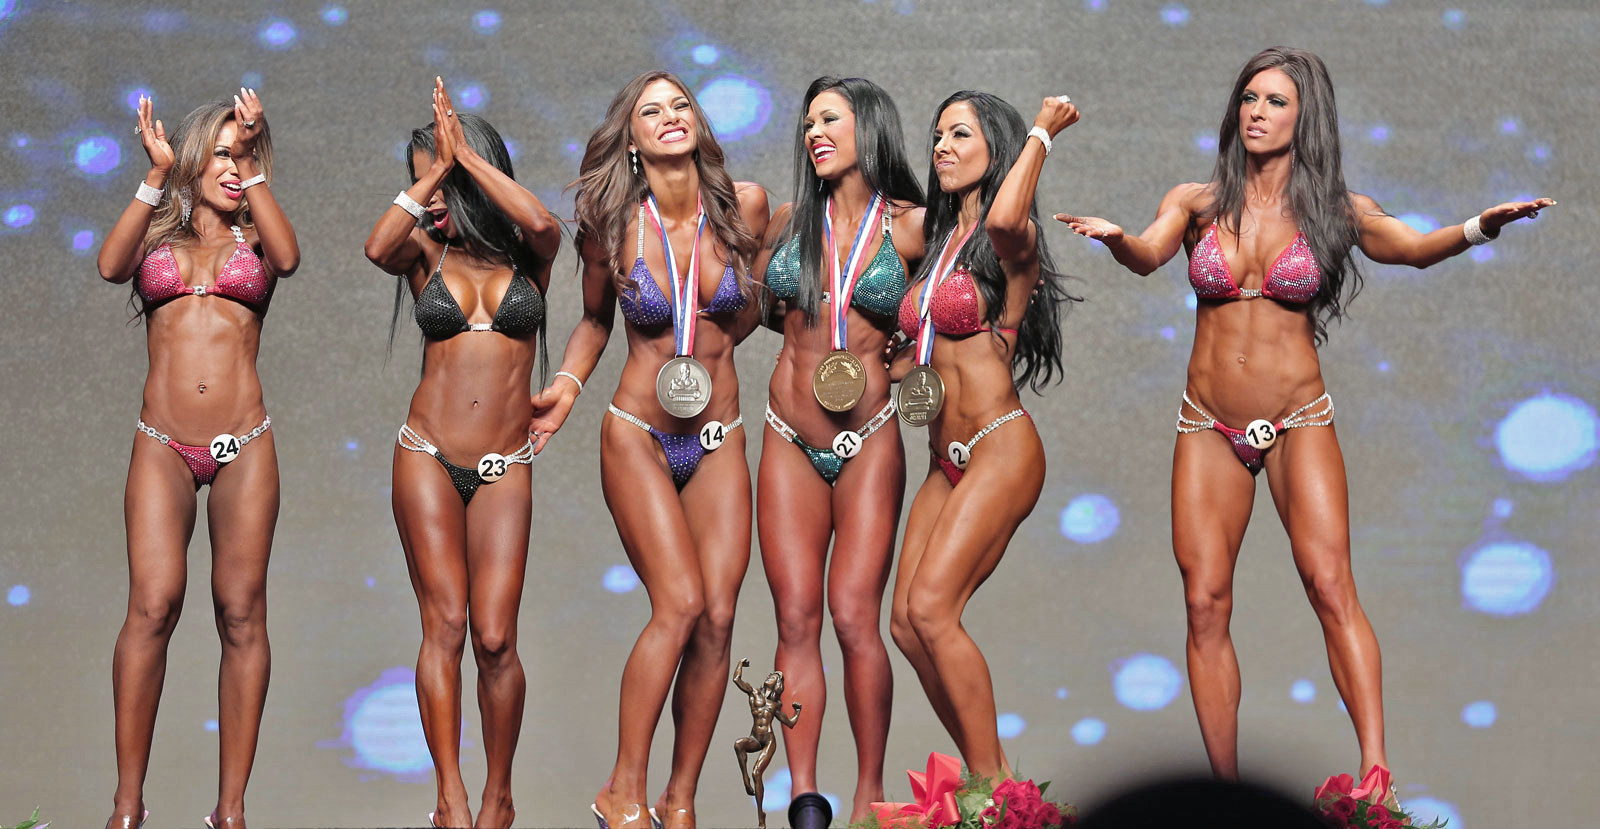 Training, Tanning, and Branding With The Bikini Bodybuilding Stars Of Instagram